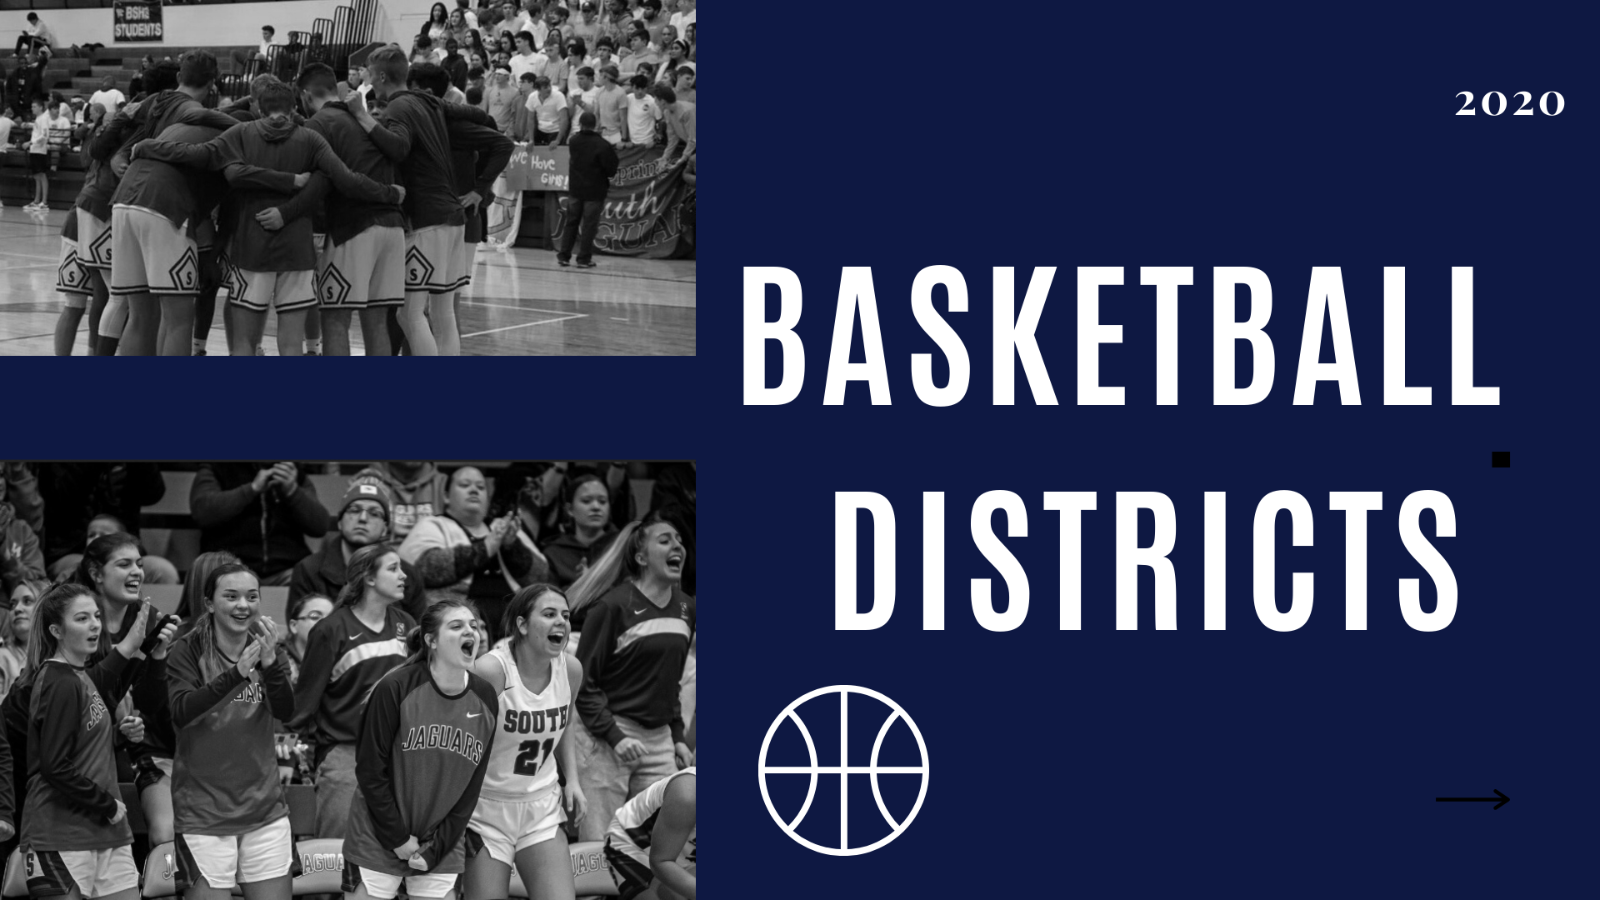 Basketball Districts!